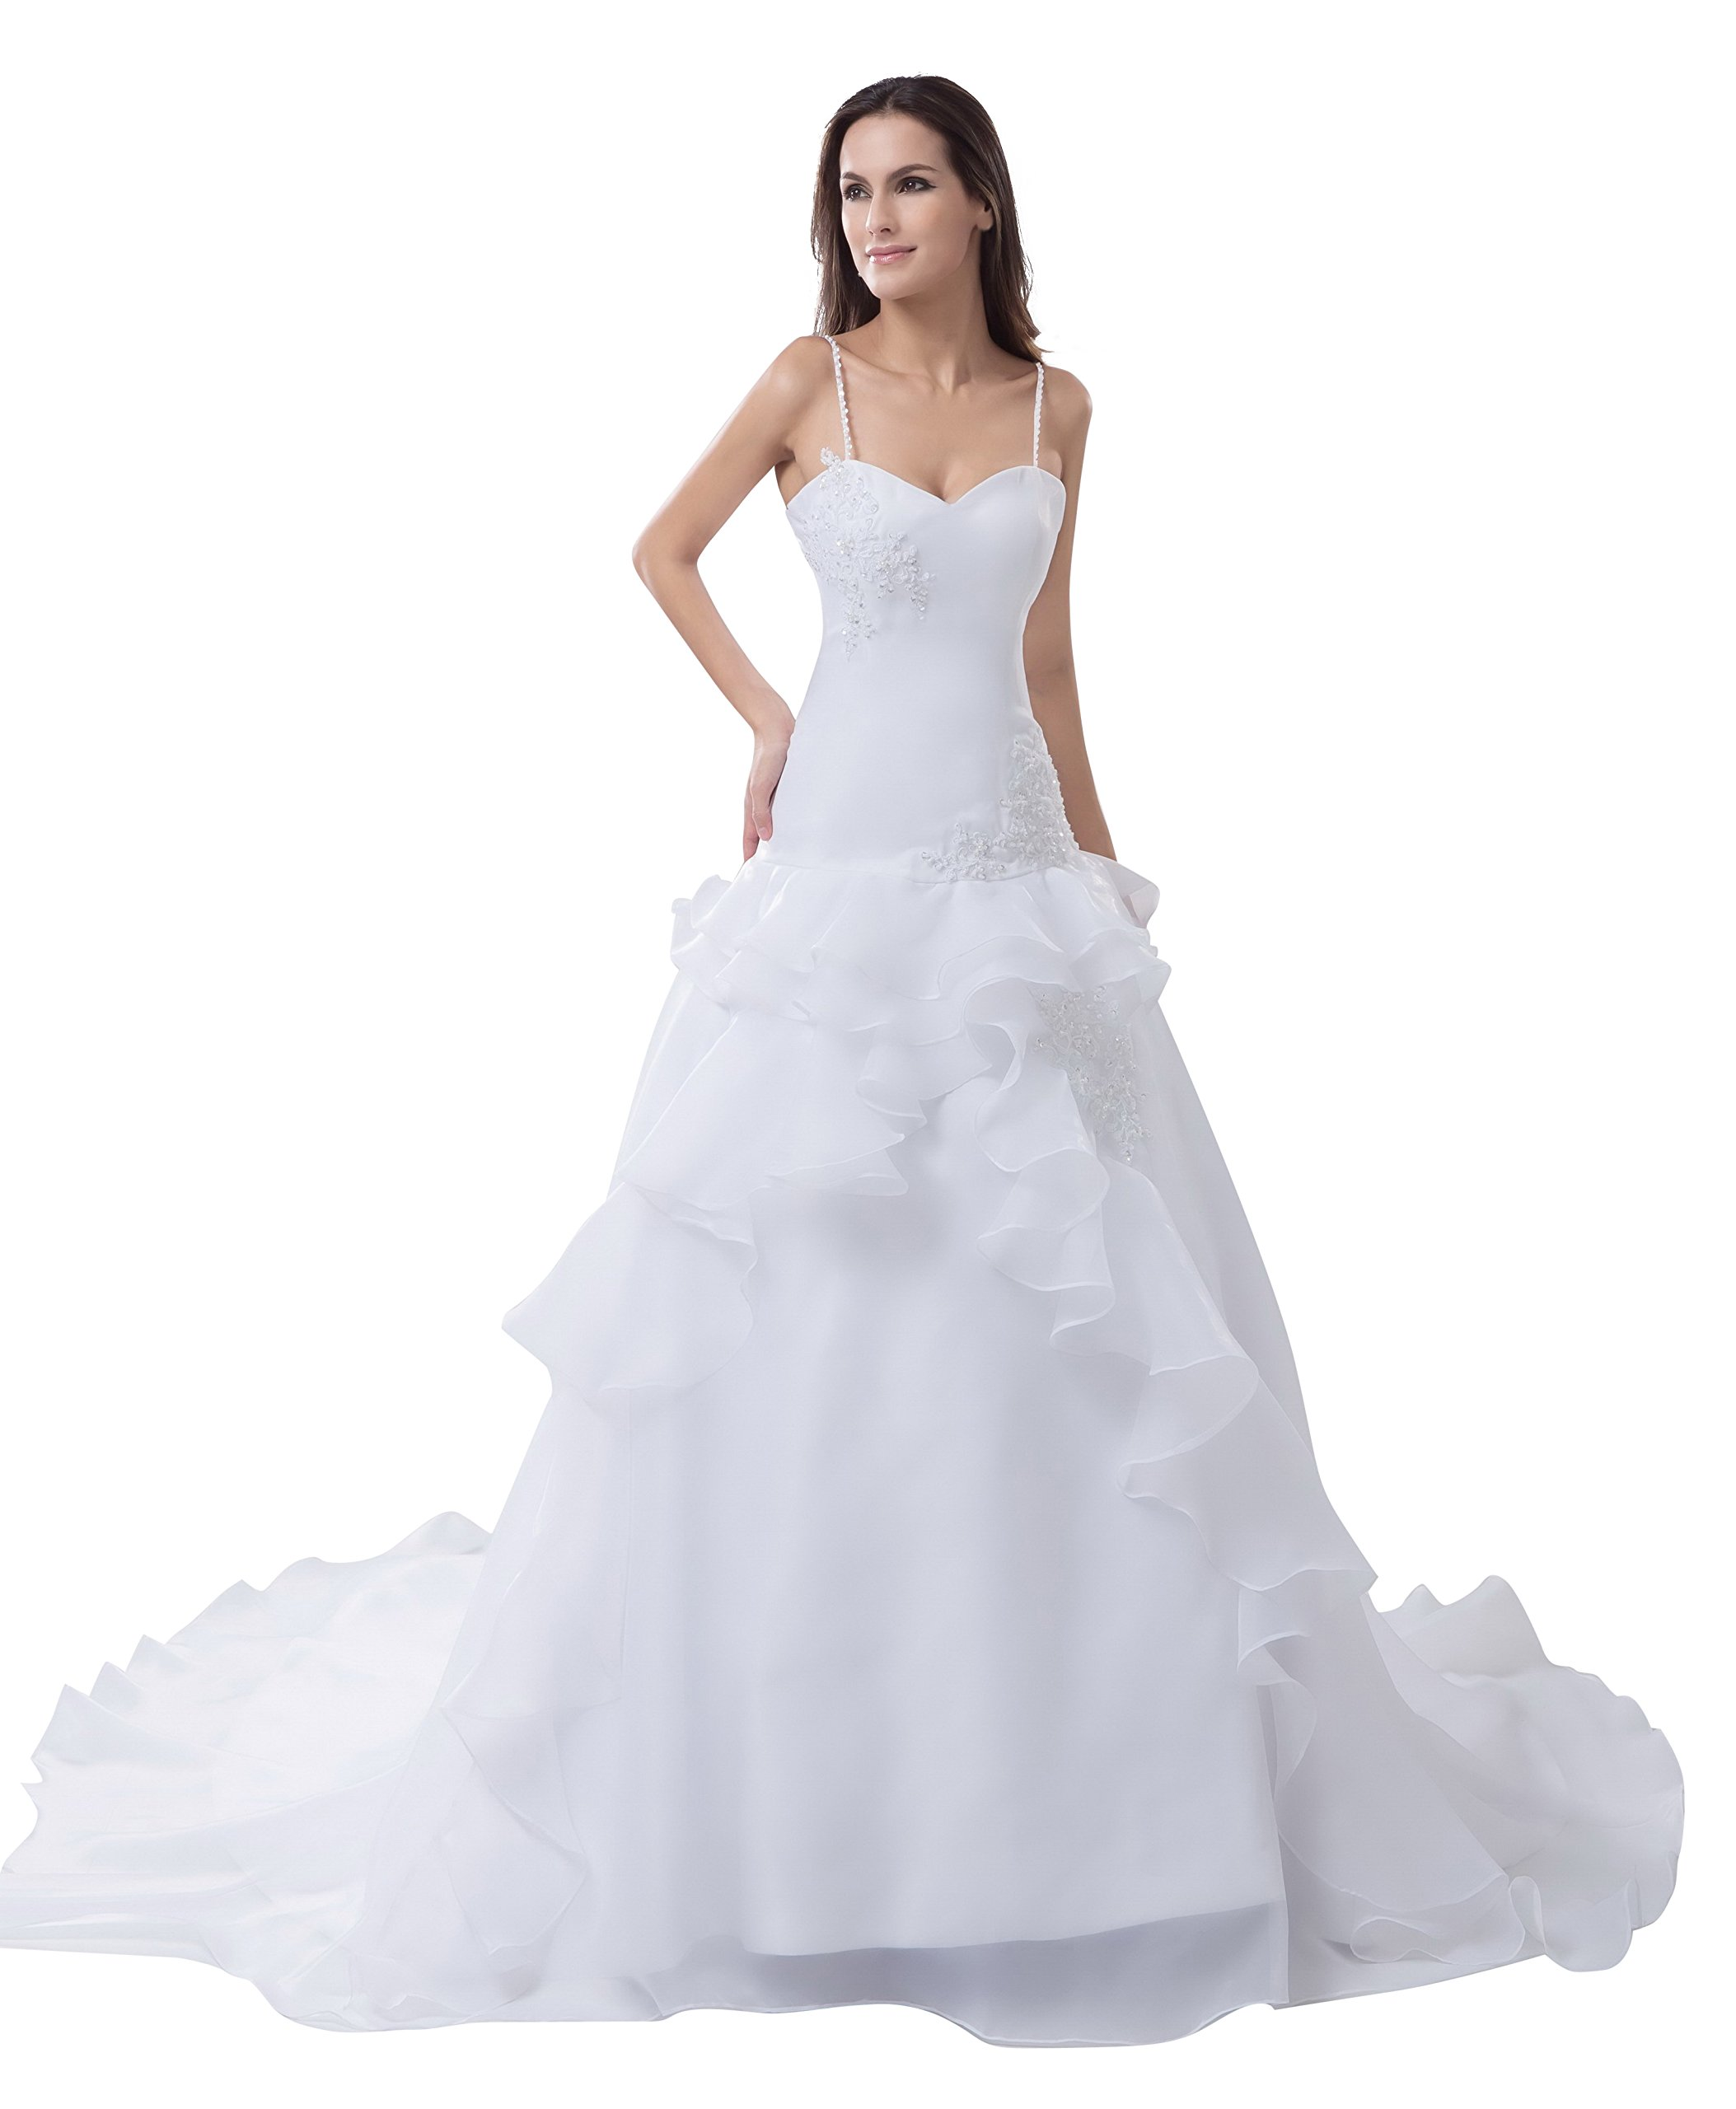 Vogue007 Womens Spaghetti Straps Satin Pongee Wedding Dress with Floral, ColorCards, 18W by Unknown